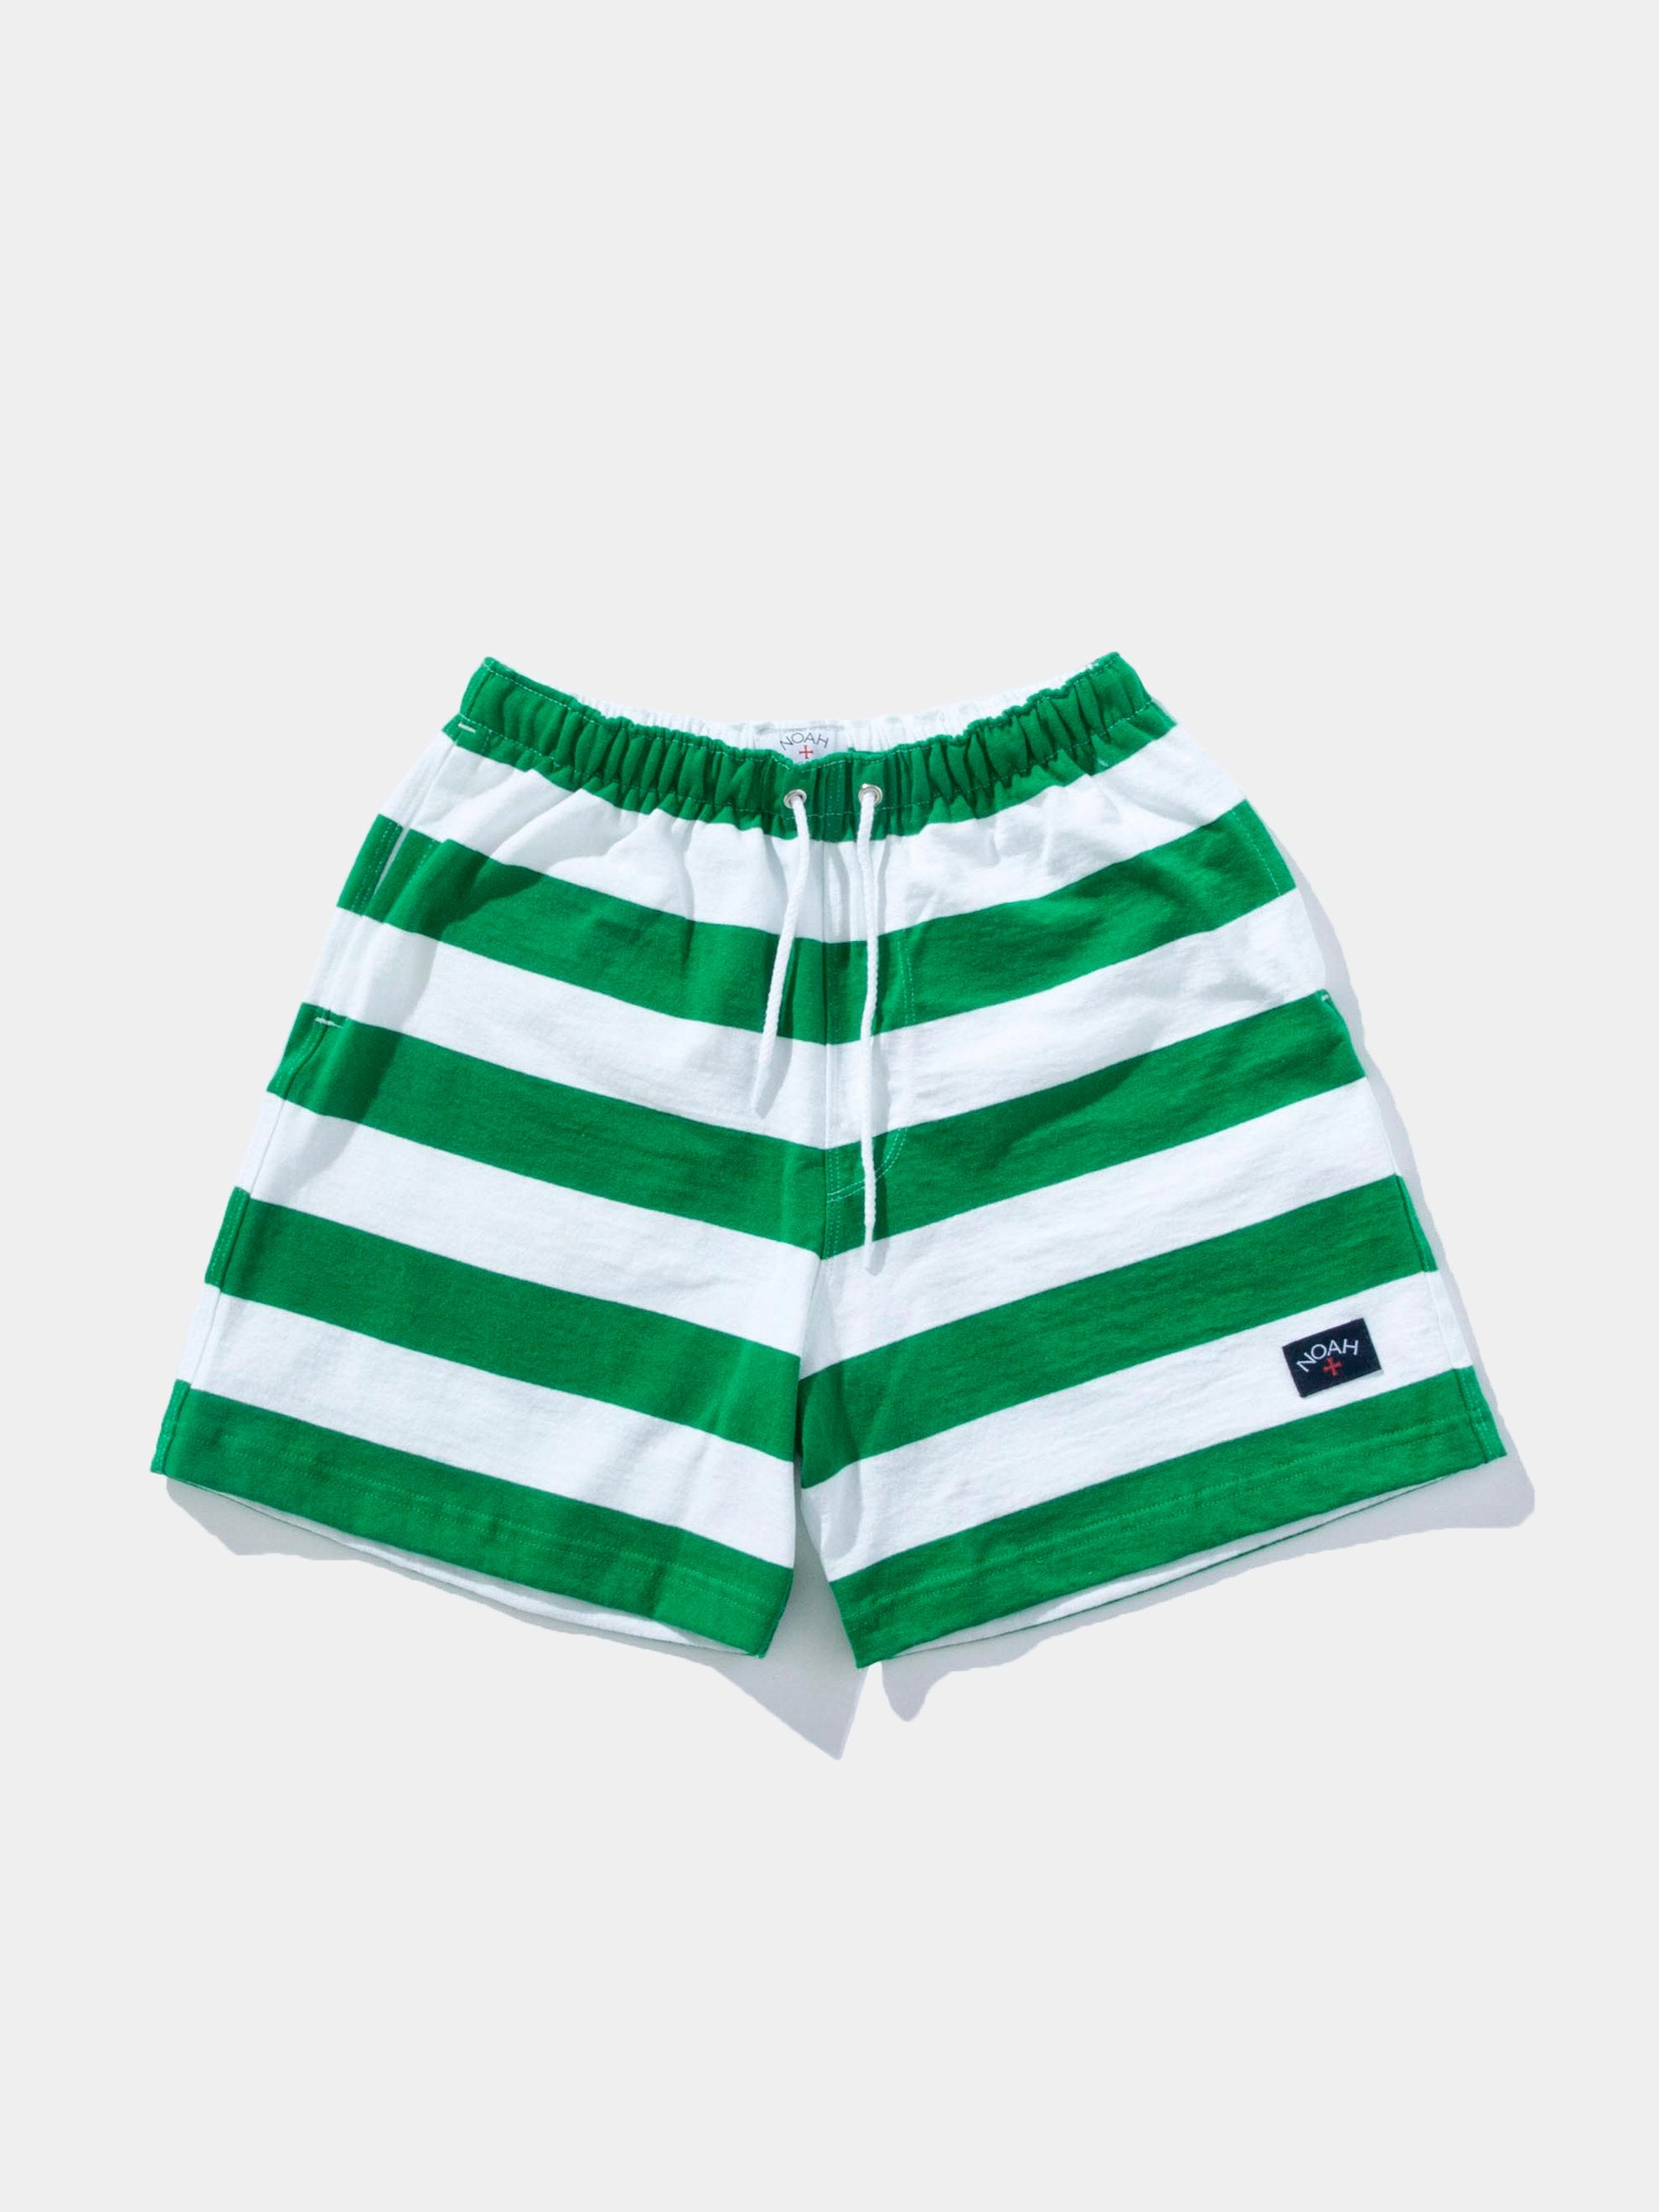 Kelly Green/White Stripe Rugby Short 1